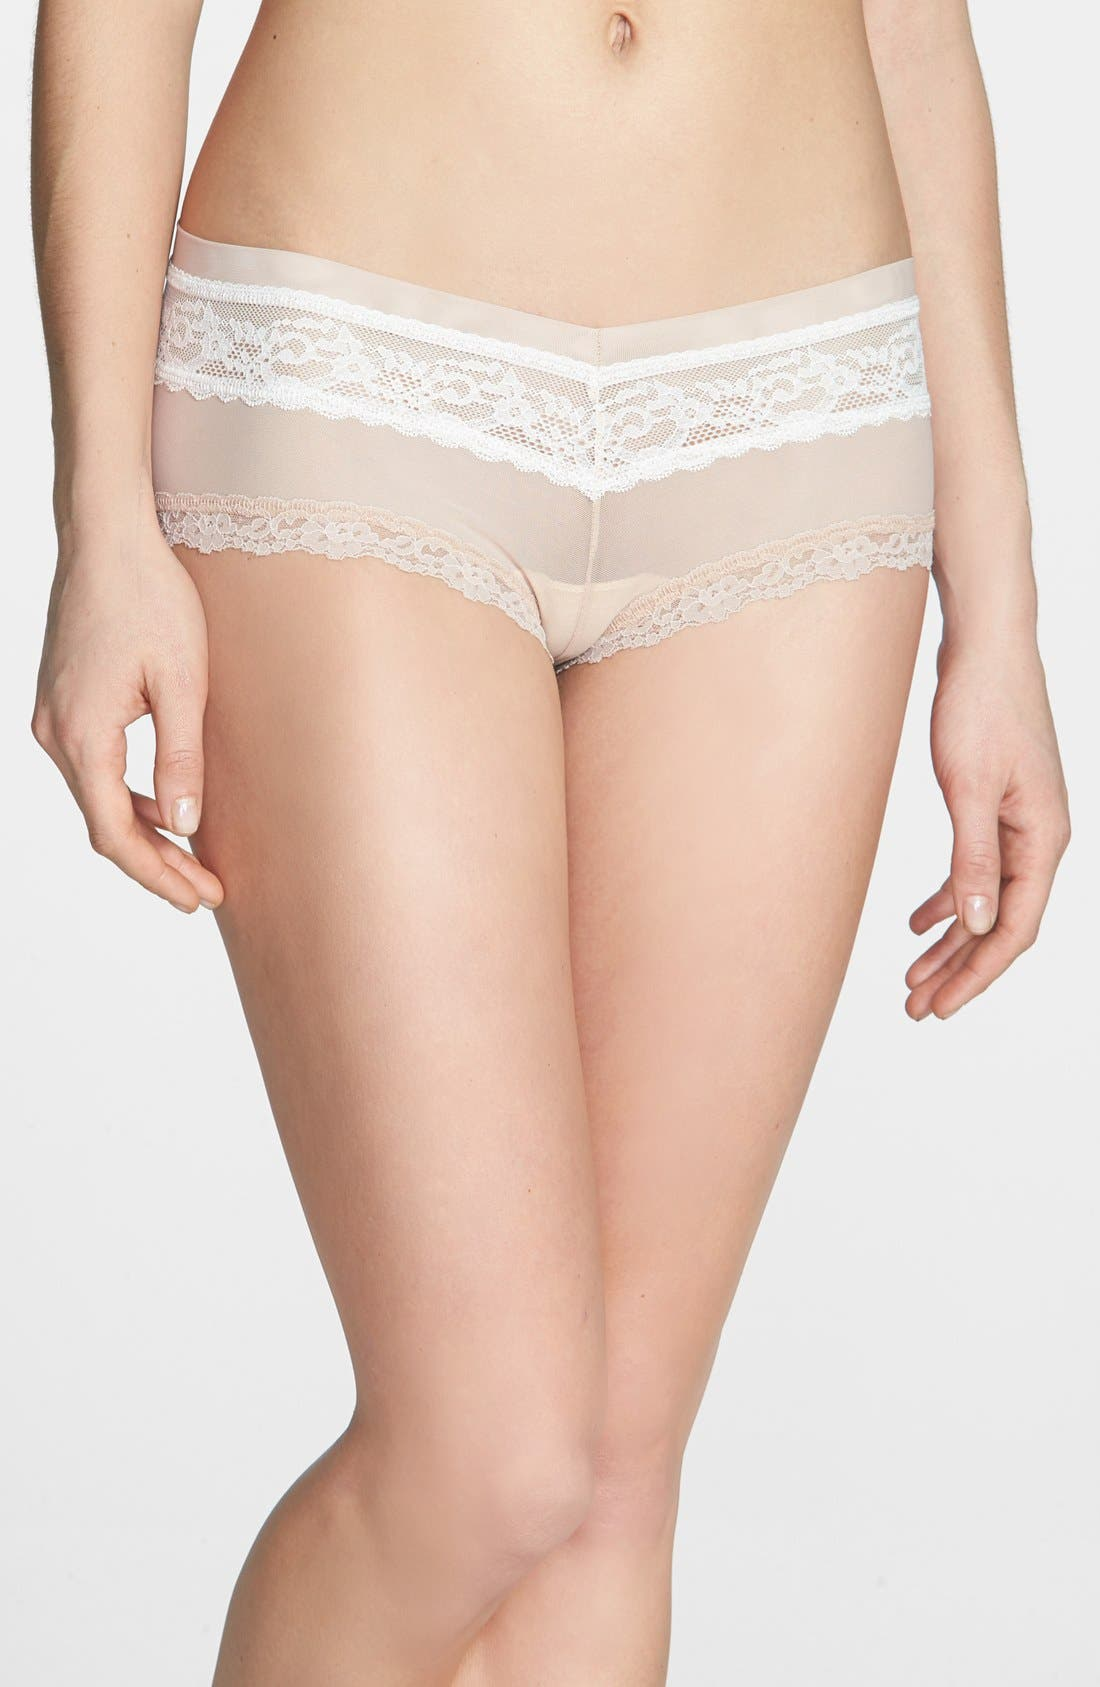 Alternate Image 1 Selected - Hanky Panky 'Sheer Indulgence' Lace Trim Boyshorts